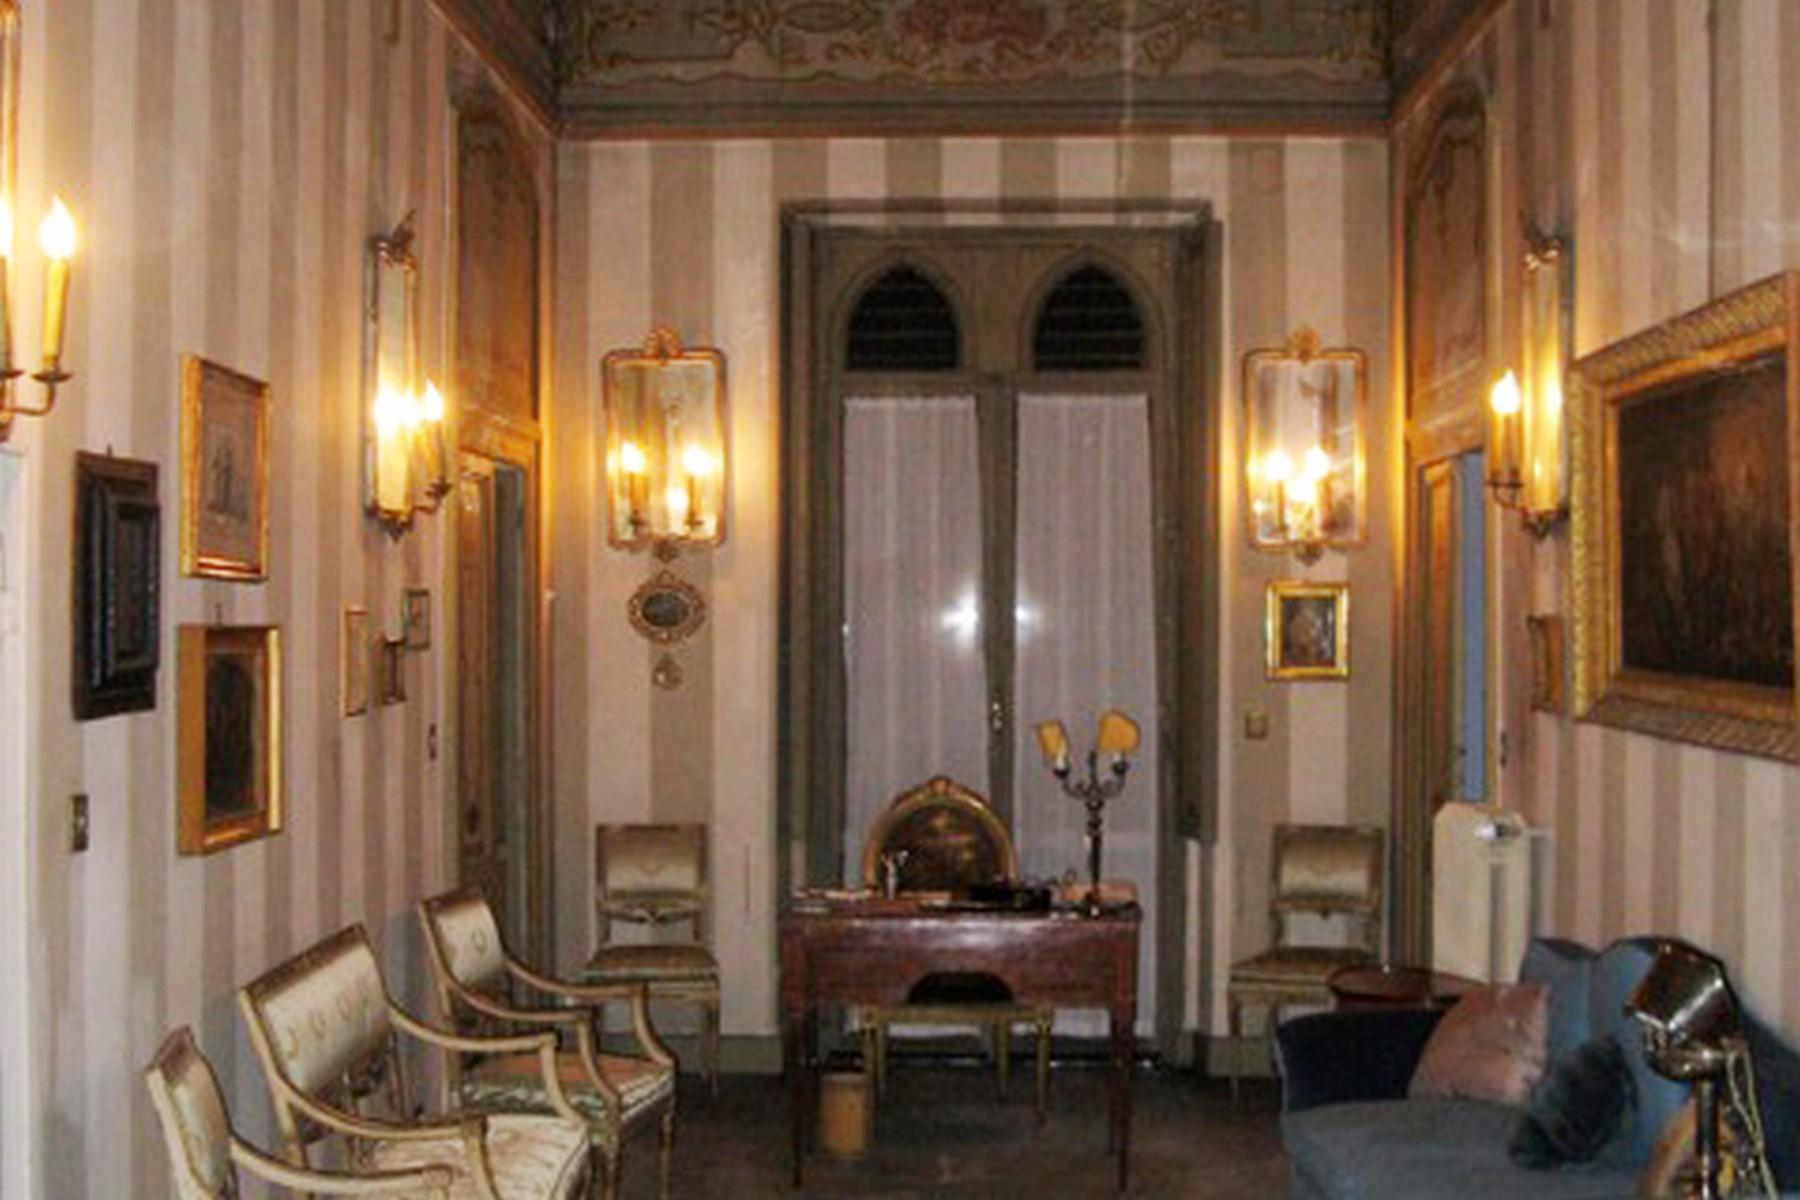 Astonishing moresque Palazzo in the historical city center - 13